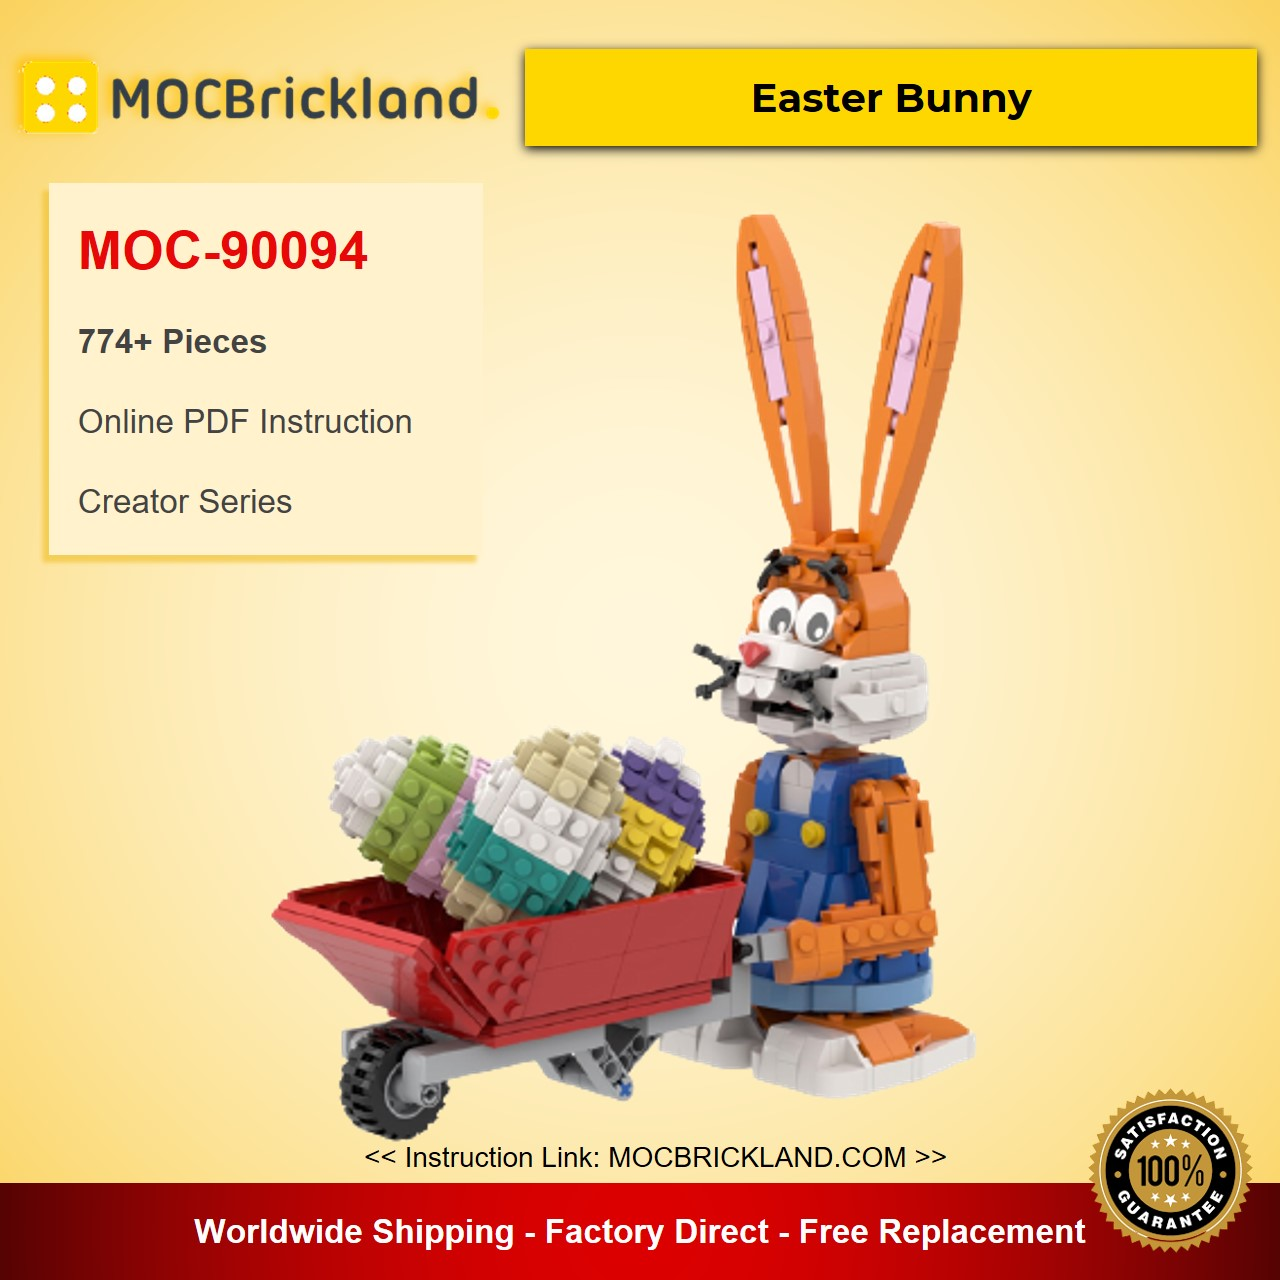 Easter Bunny MOC-90094 Creator With 774 Pieces